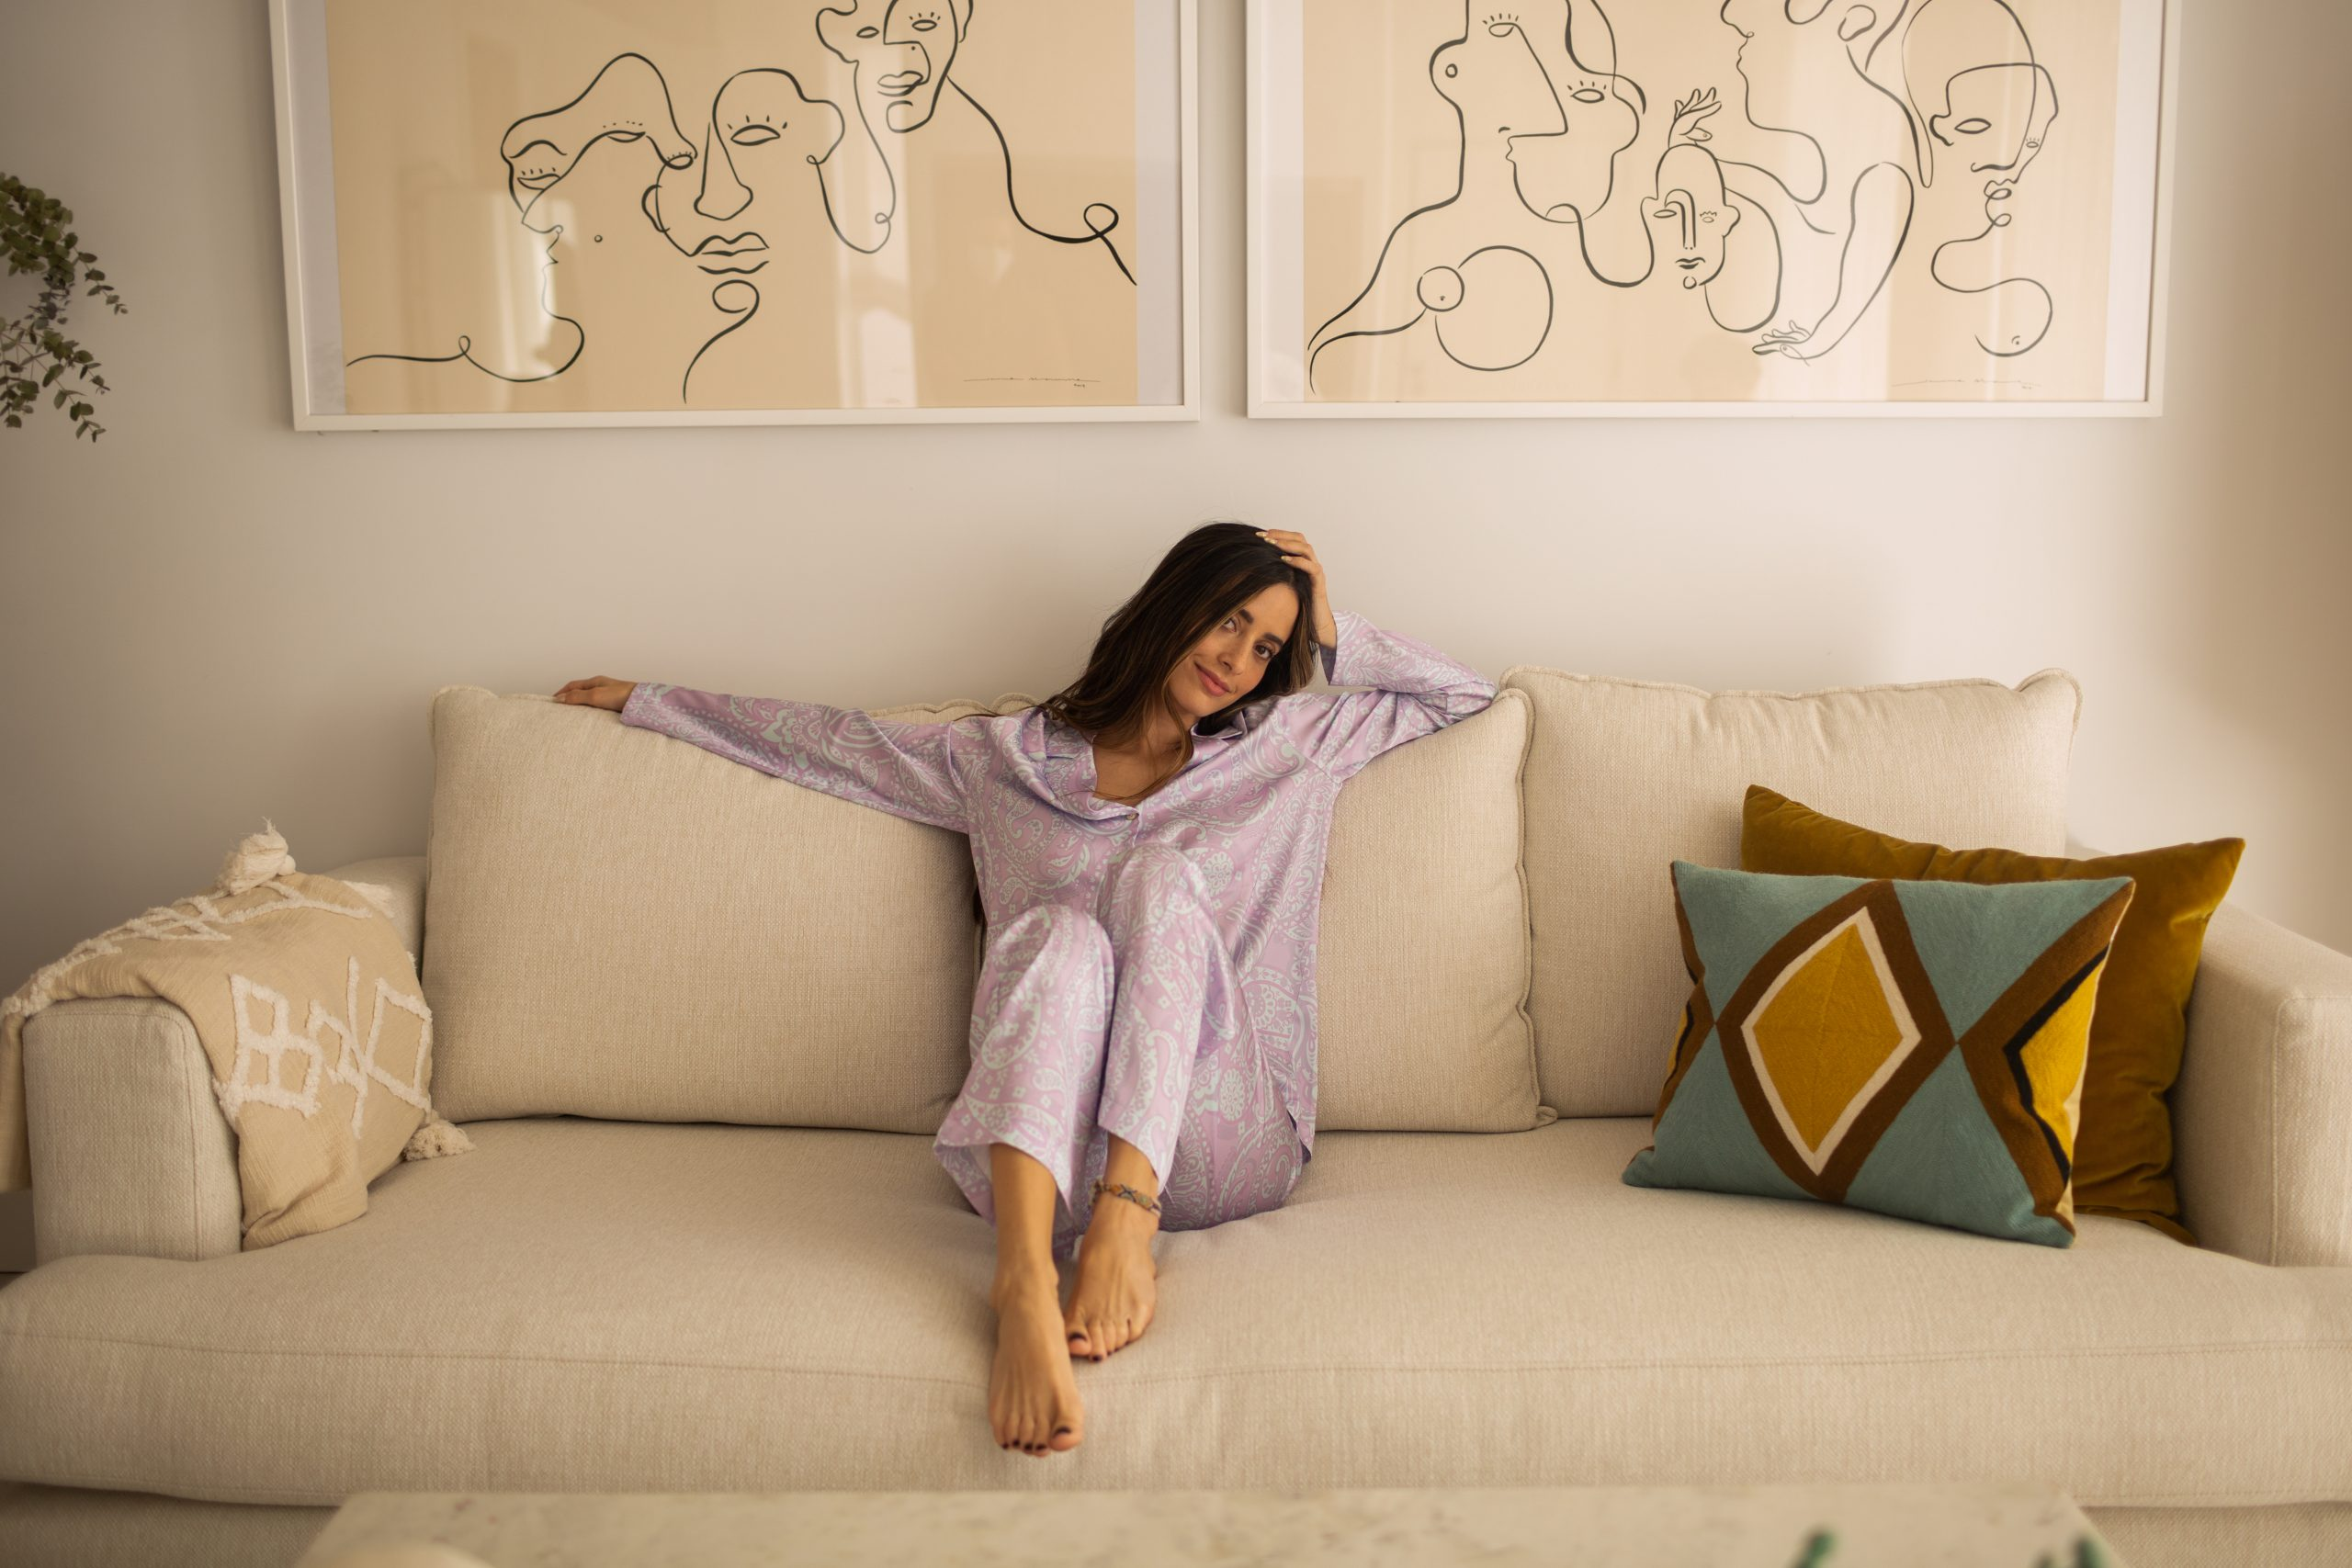 Pijama Happily- Colección Bliss THE-ARE x @mariafrubies